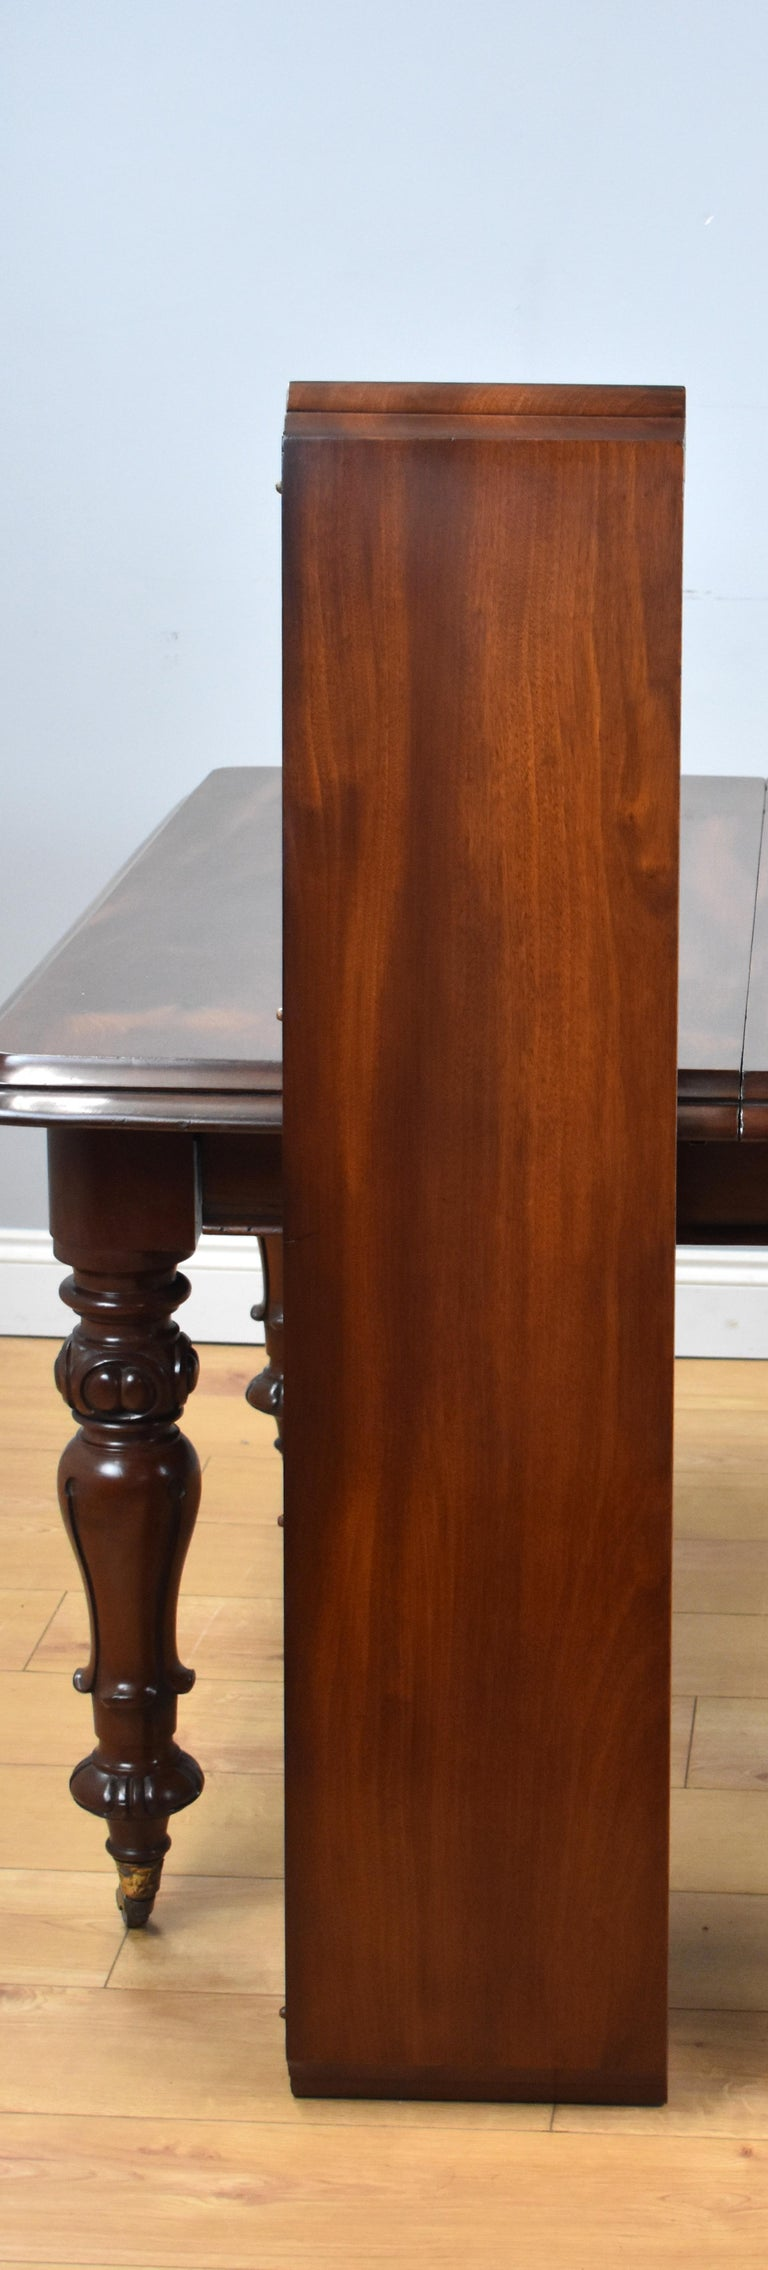 19th Century English Victorian Mahogany Extending Dining Table For Sale 5